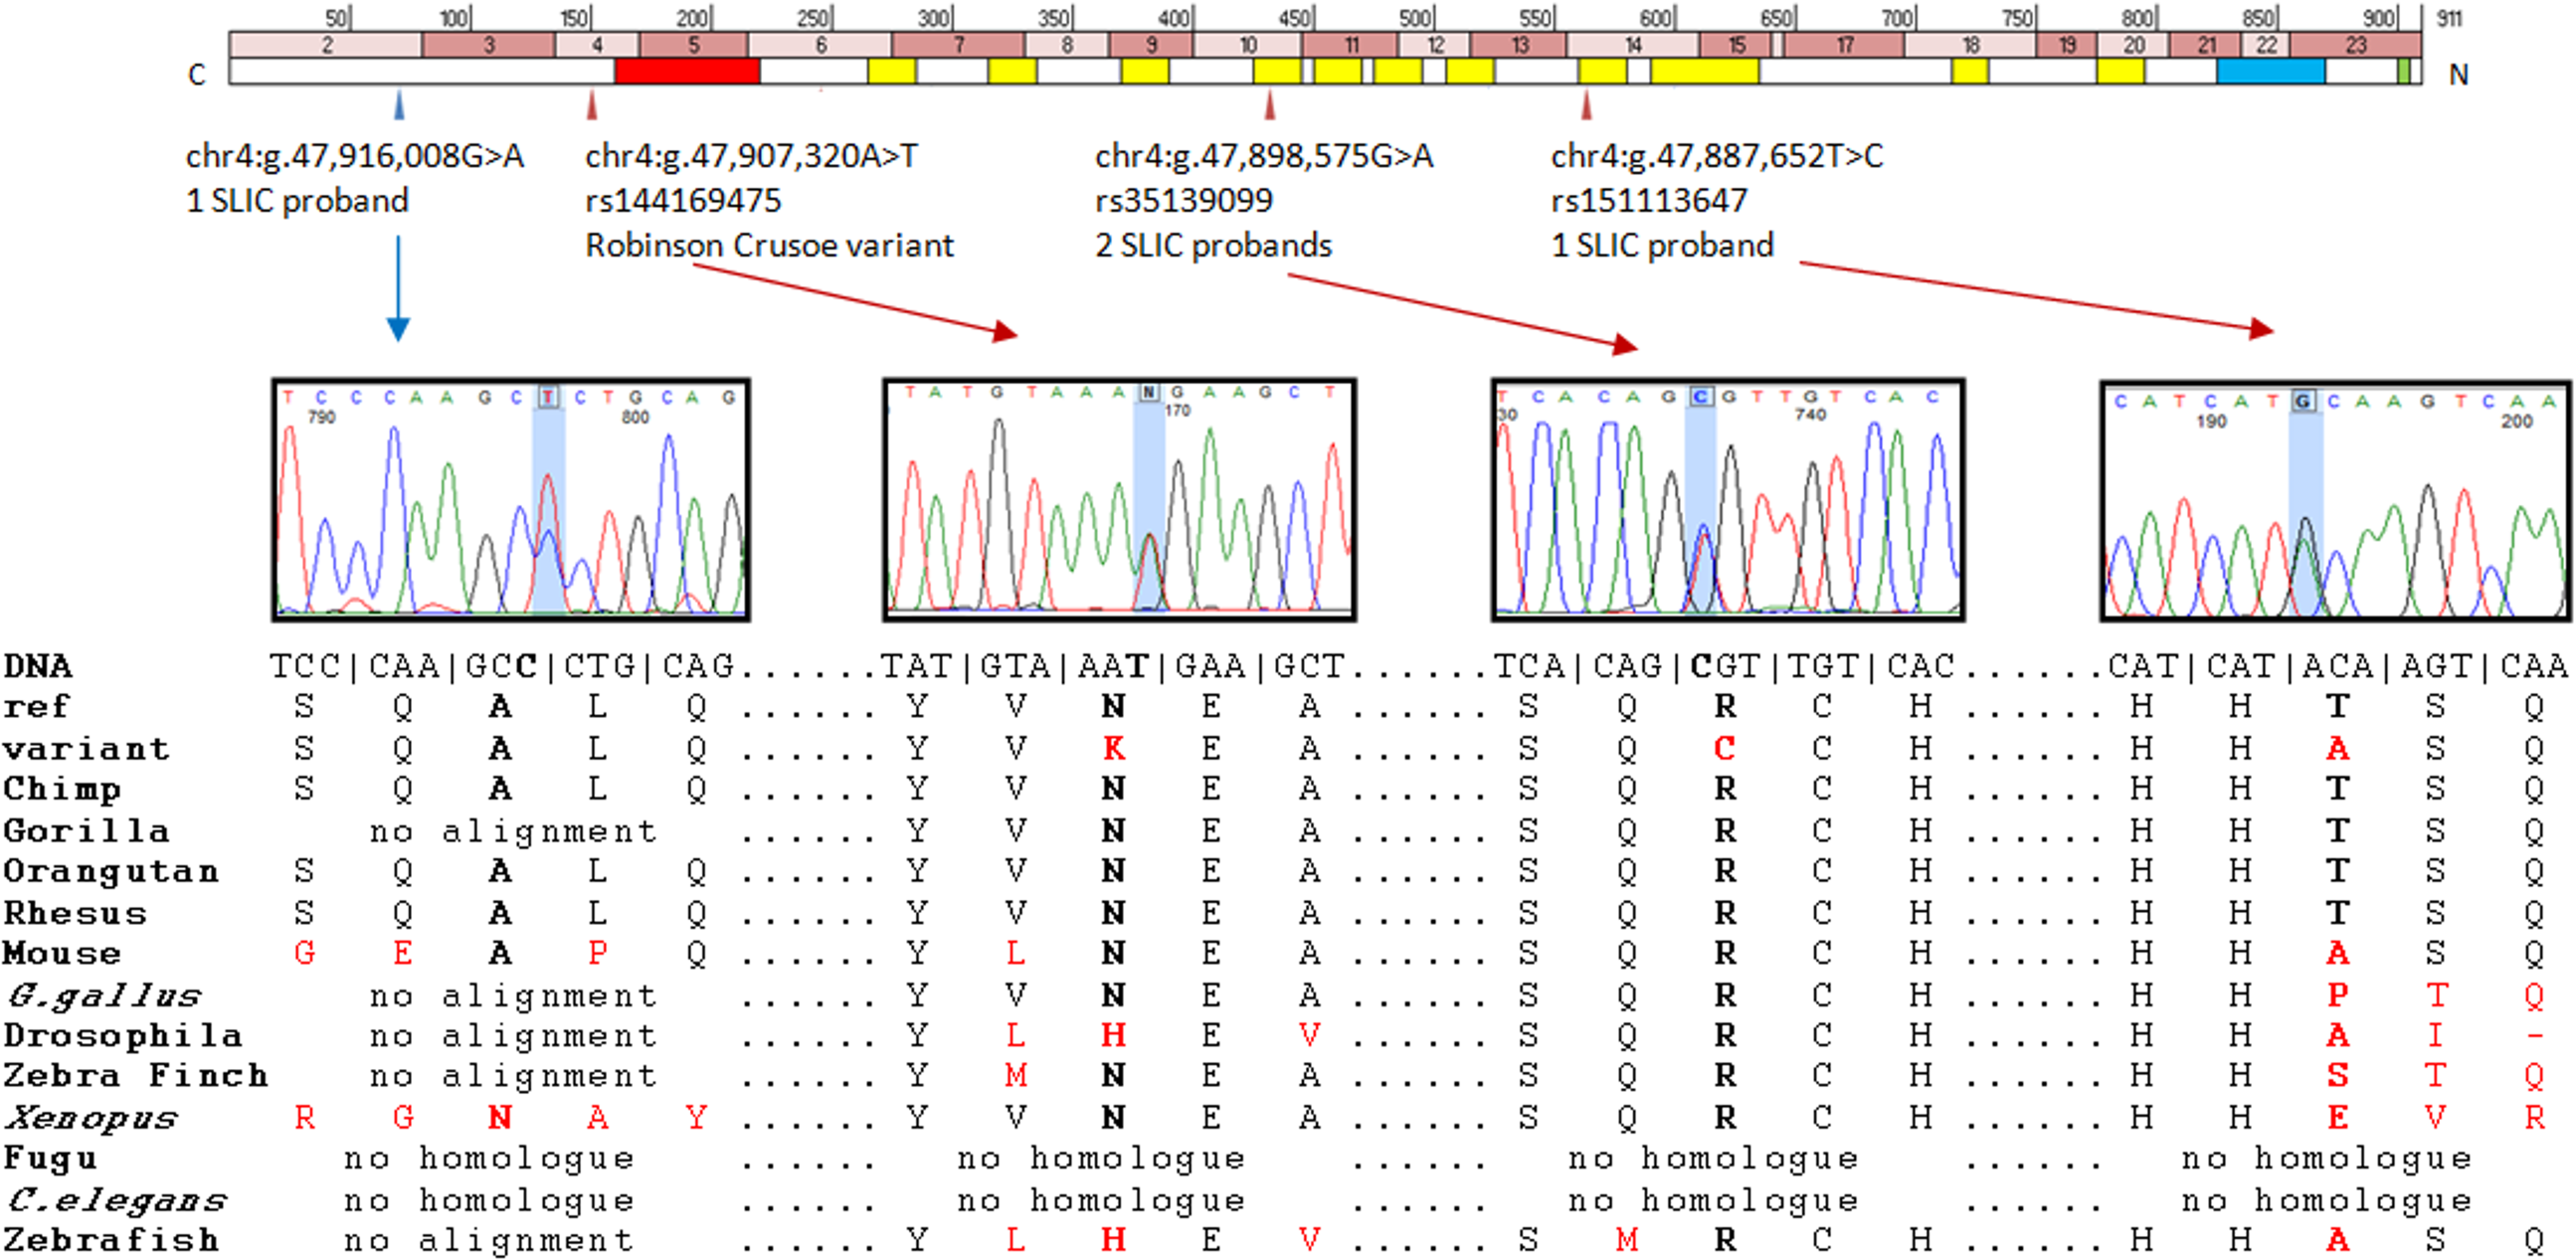 Putative contributory coding variants identified in <i>NFXL1</i> by this study.